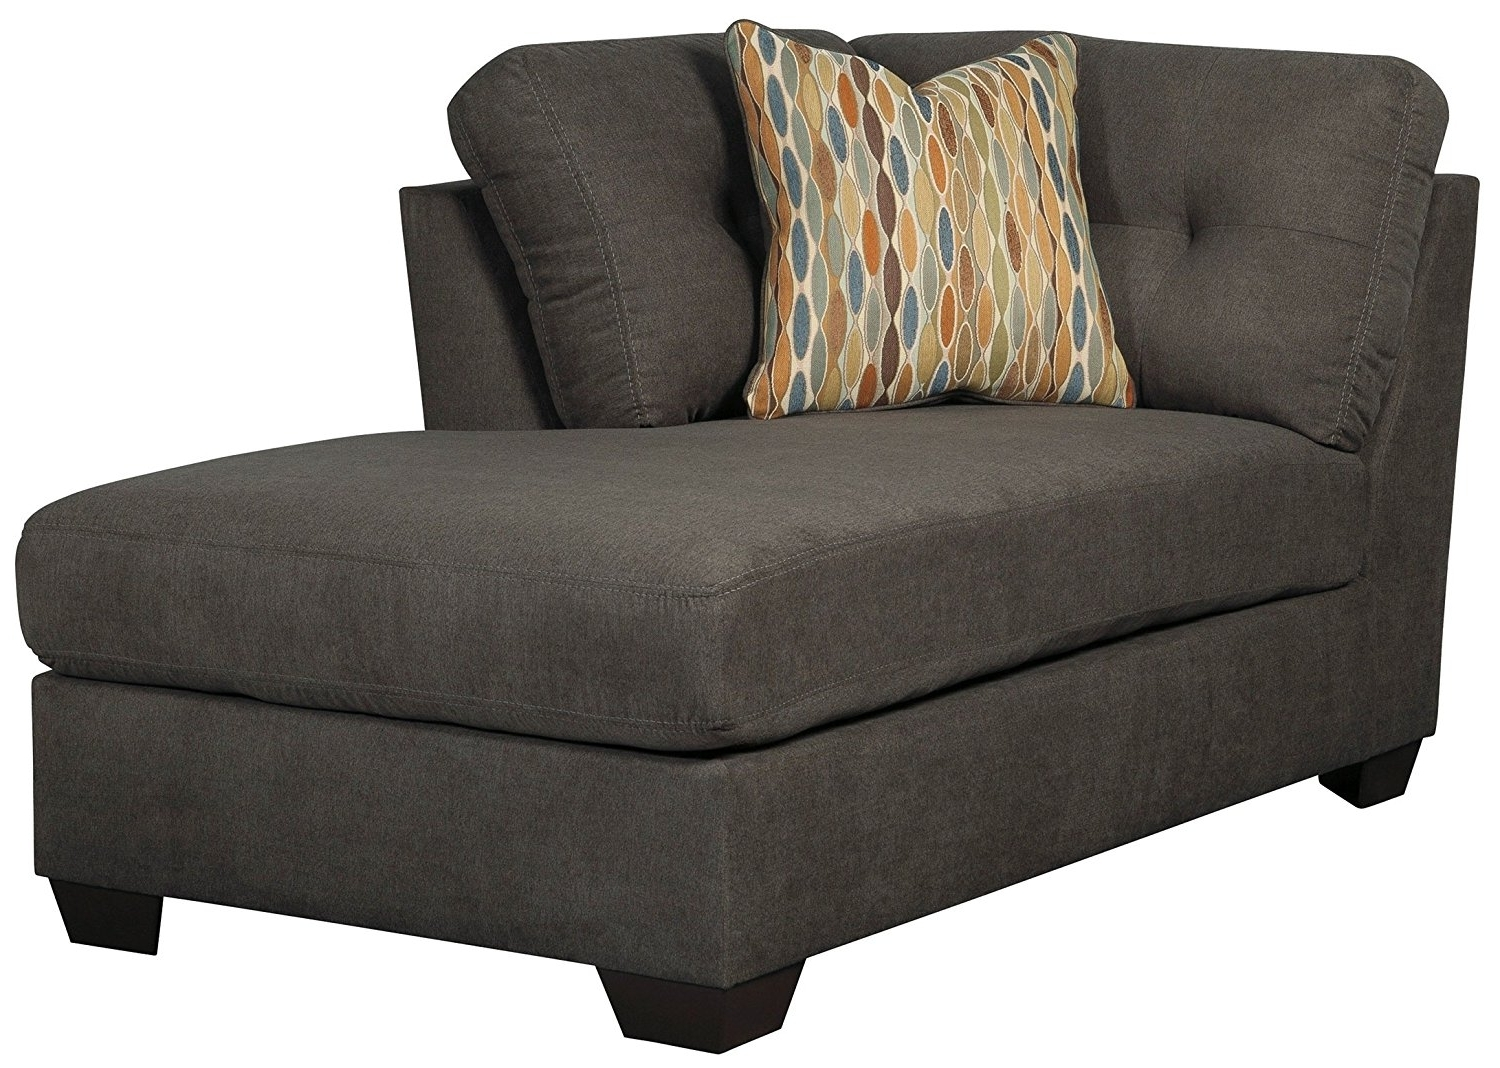 Recent Amazon: Ashley Furniture Delta City Right Corner Chaise Lounge Regarding Ashley Chaise Lounges (View 6 of 15)